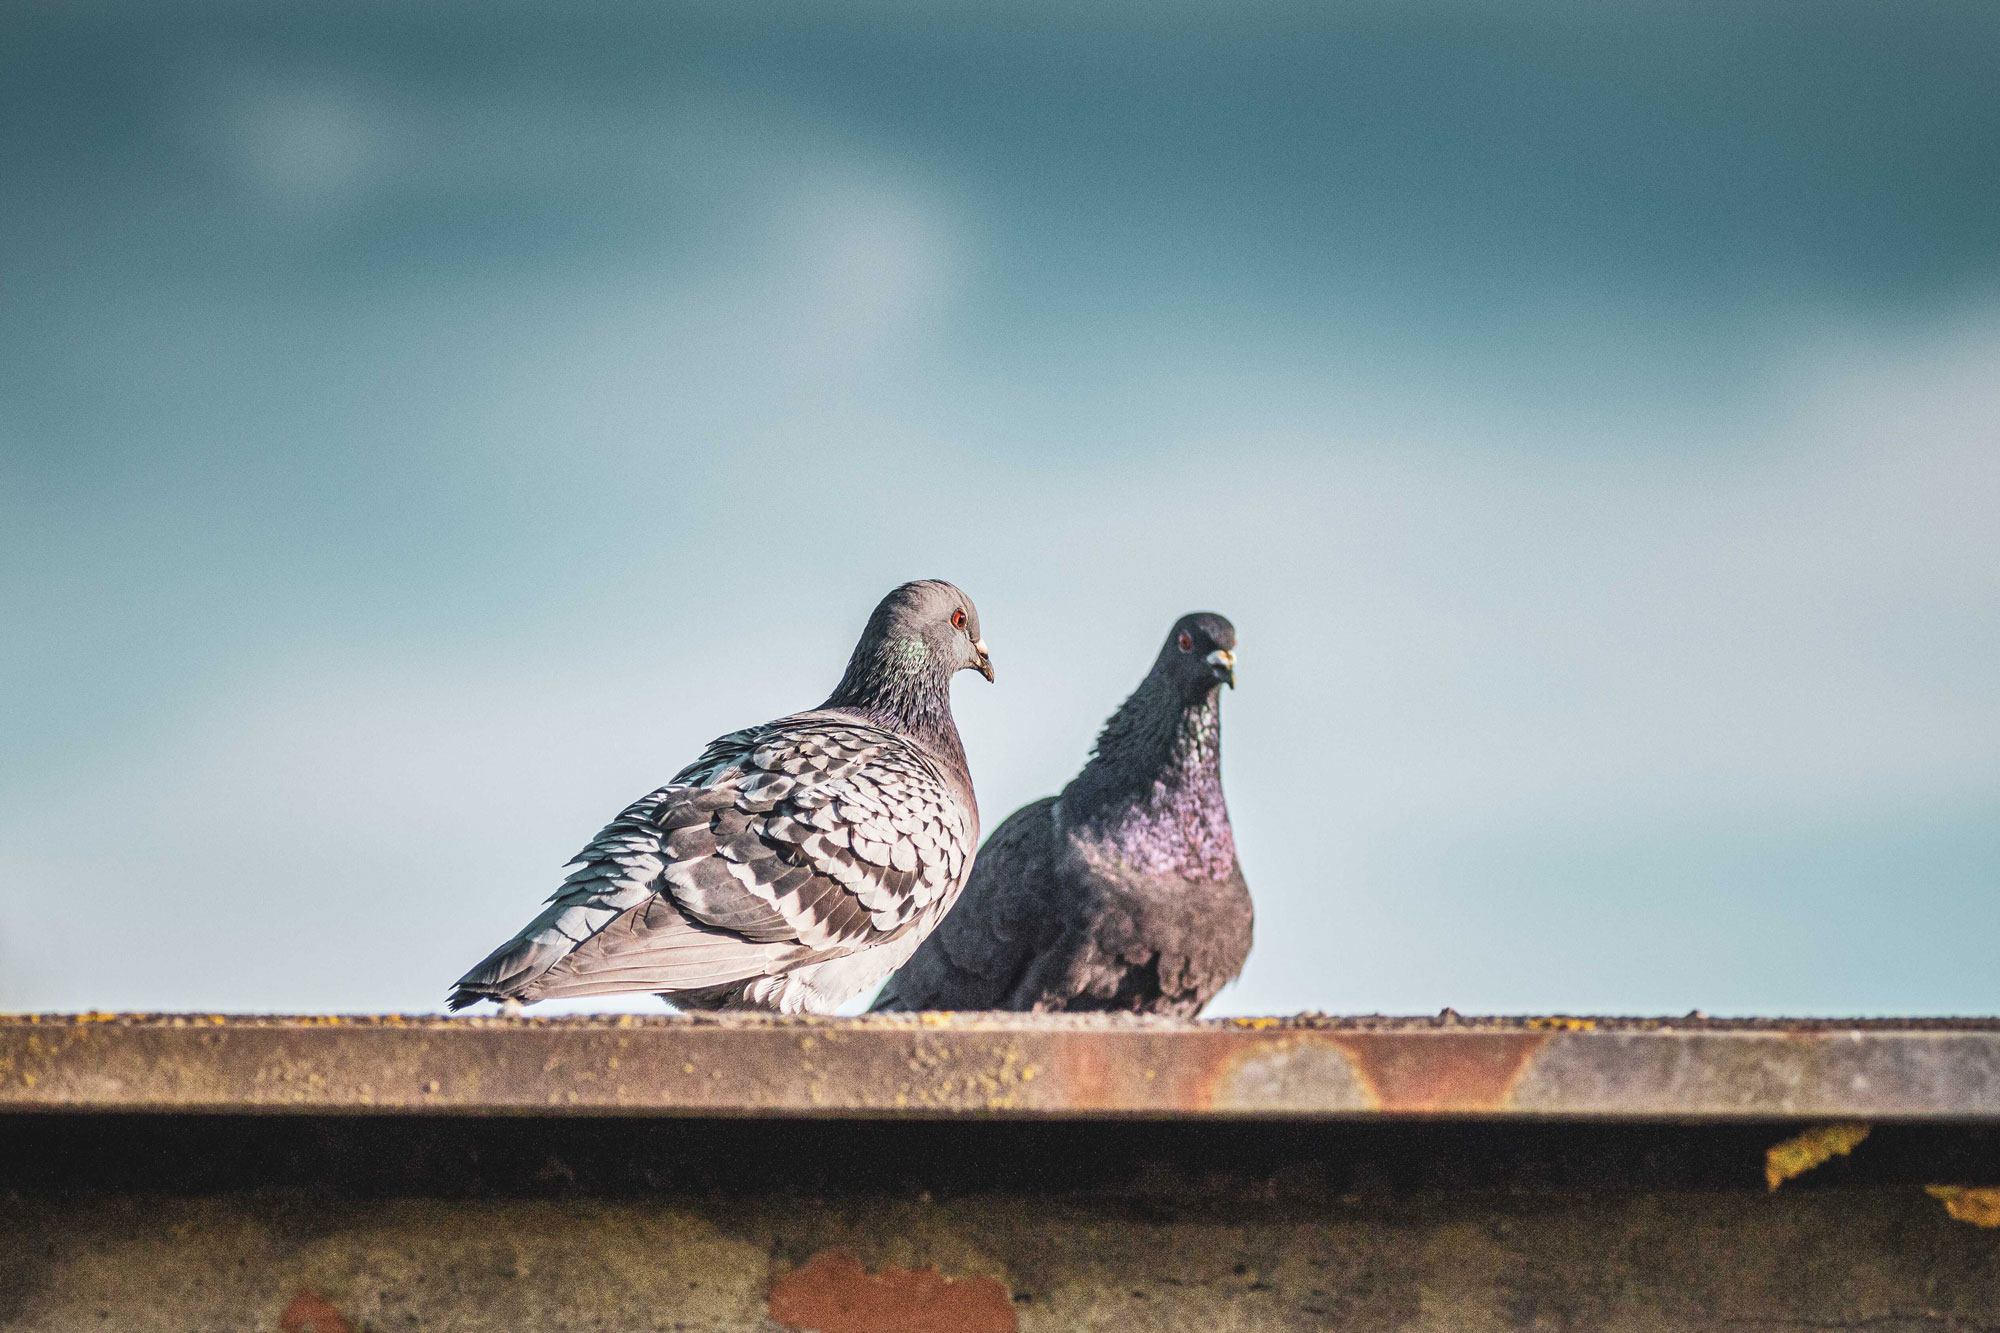 closeup-shot-two-stock-doves-standing-roof_optimized